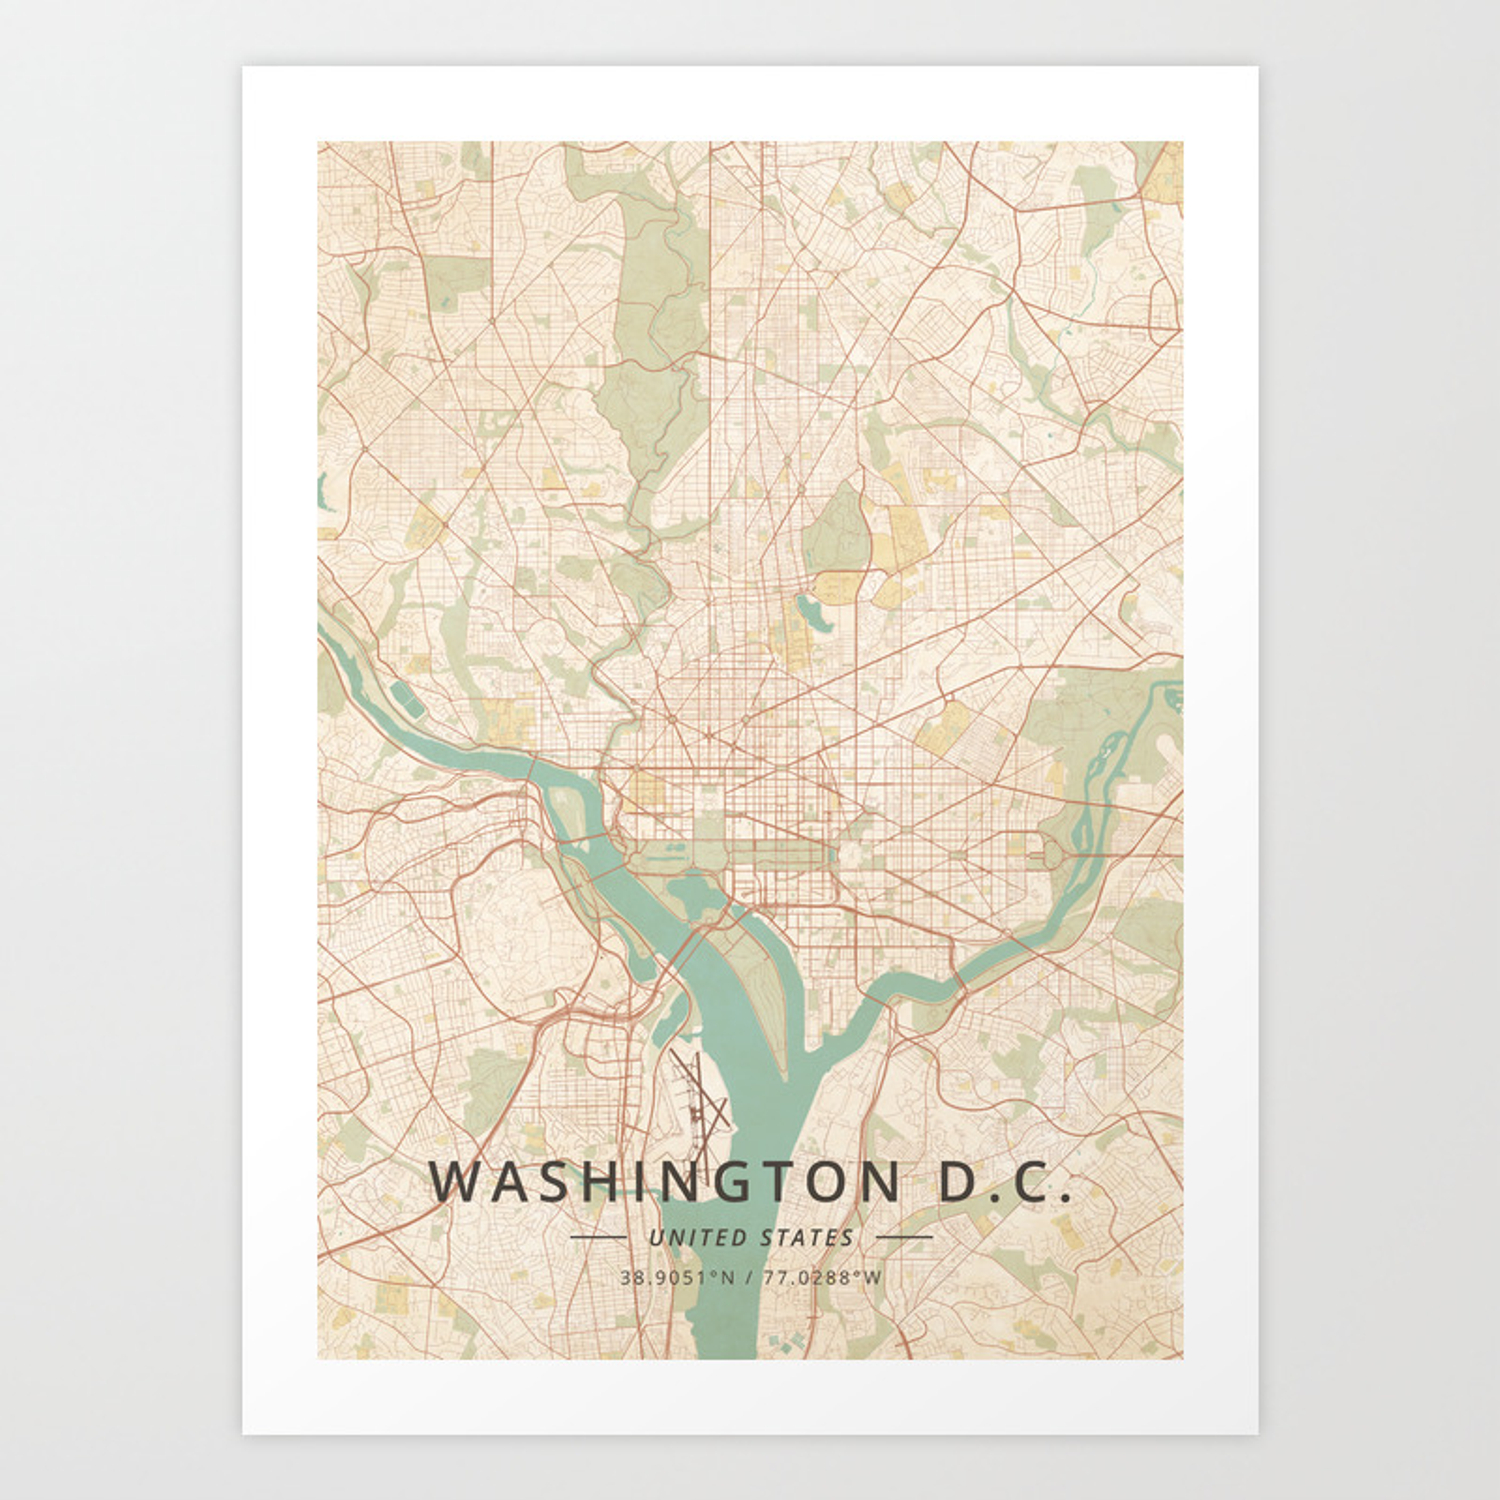 Washington D.C., United States - Vintage Map Art Print on dc city map, dc train map, dc neighborhood map, wa dc map, dc on a map, dc airports map, dc walking map, dc location on map, dc tourist map, dc tour map, dc museums map, dc transit map, dc state map, dc county map, dc capital map, dc crime map, dc attractions map, virginia map, dc road map, dc street maps,